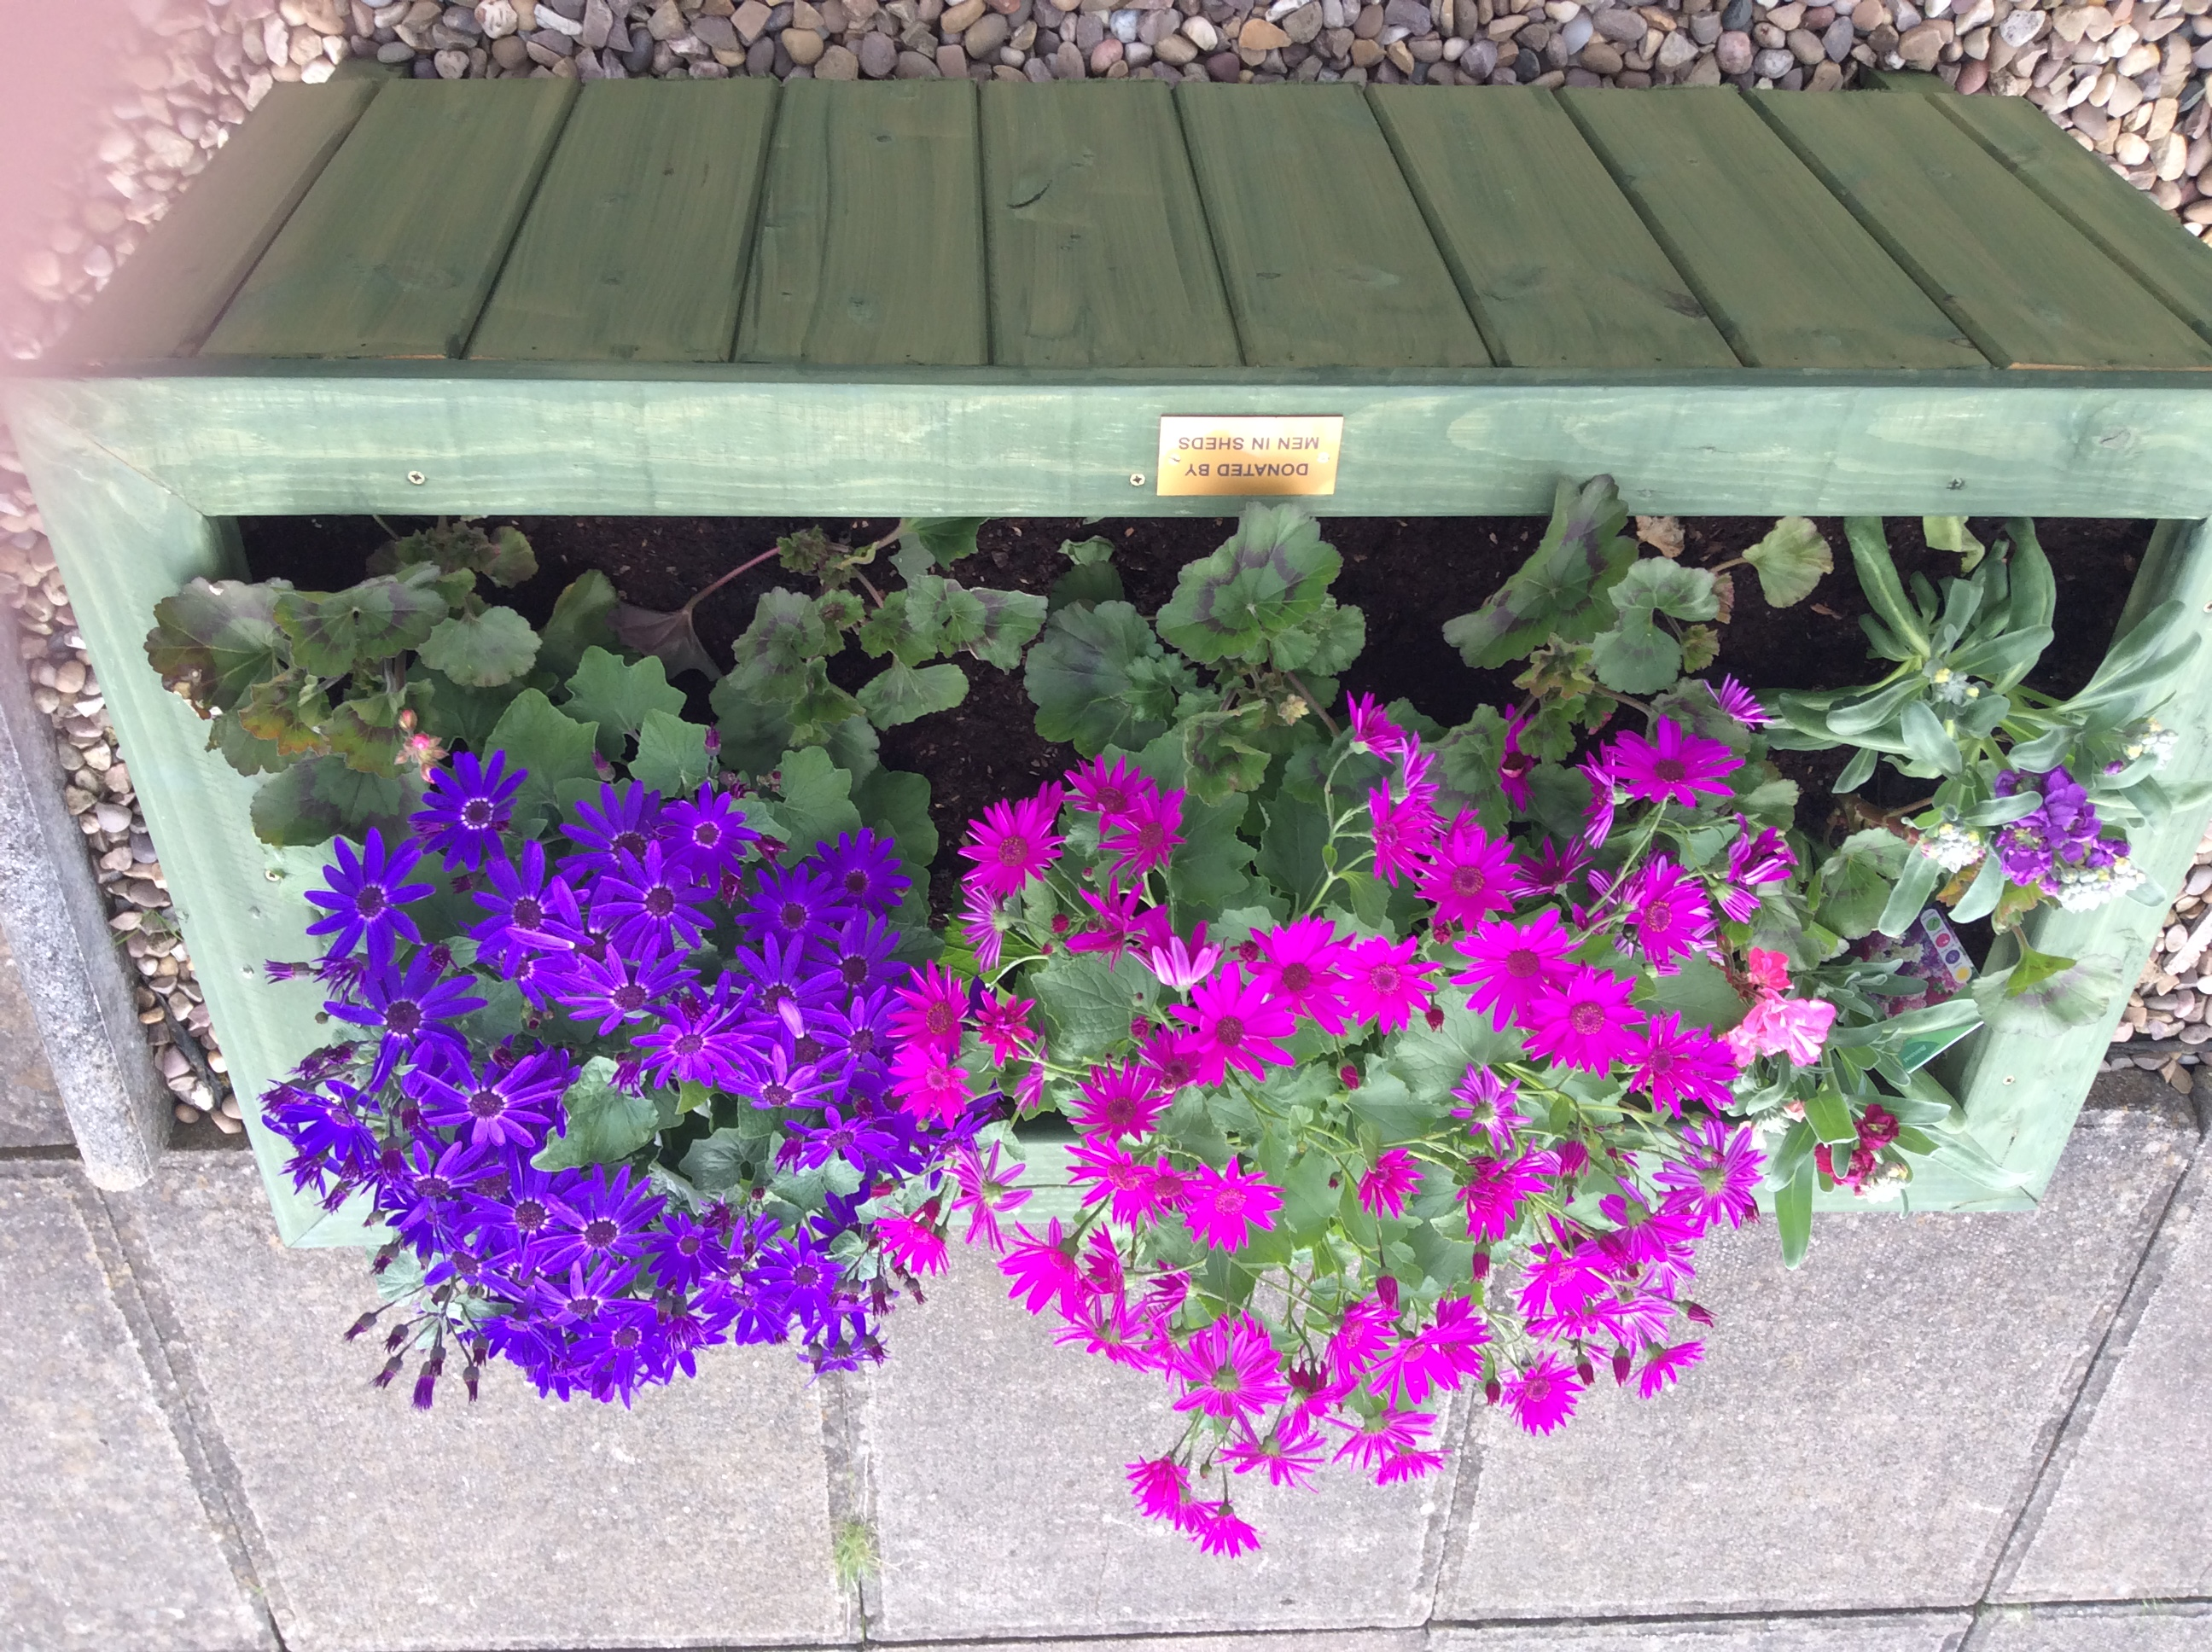 Planters donated by Men in Sheds